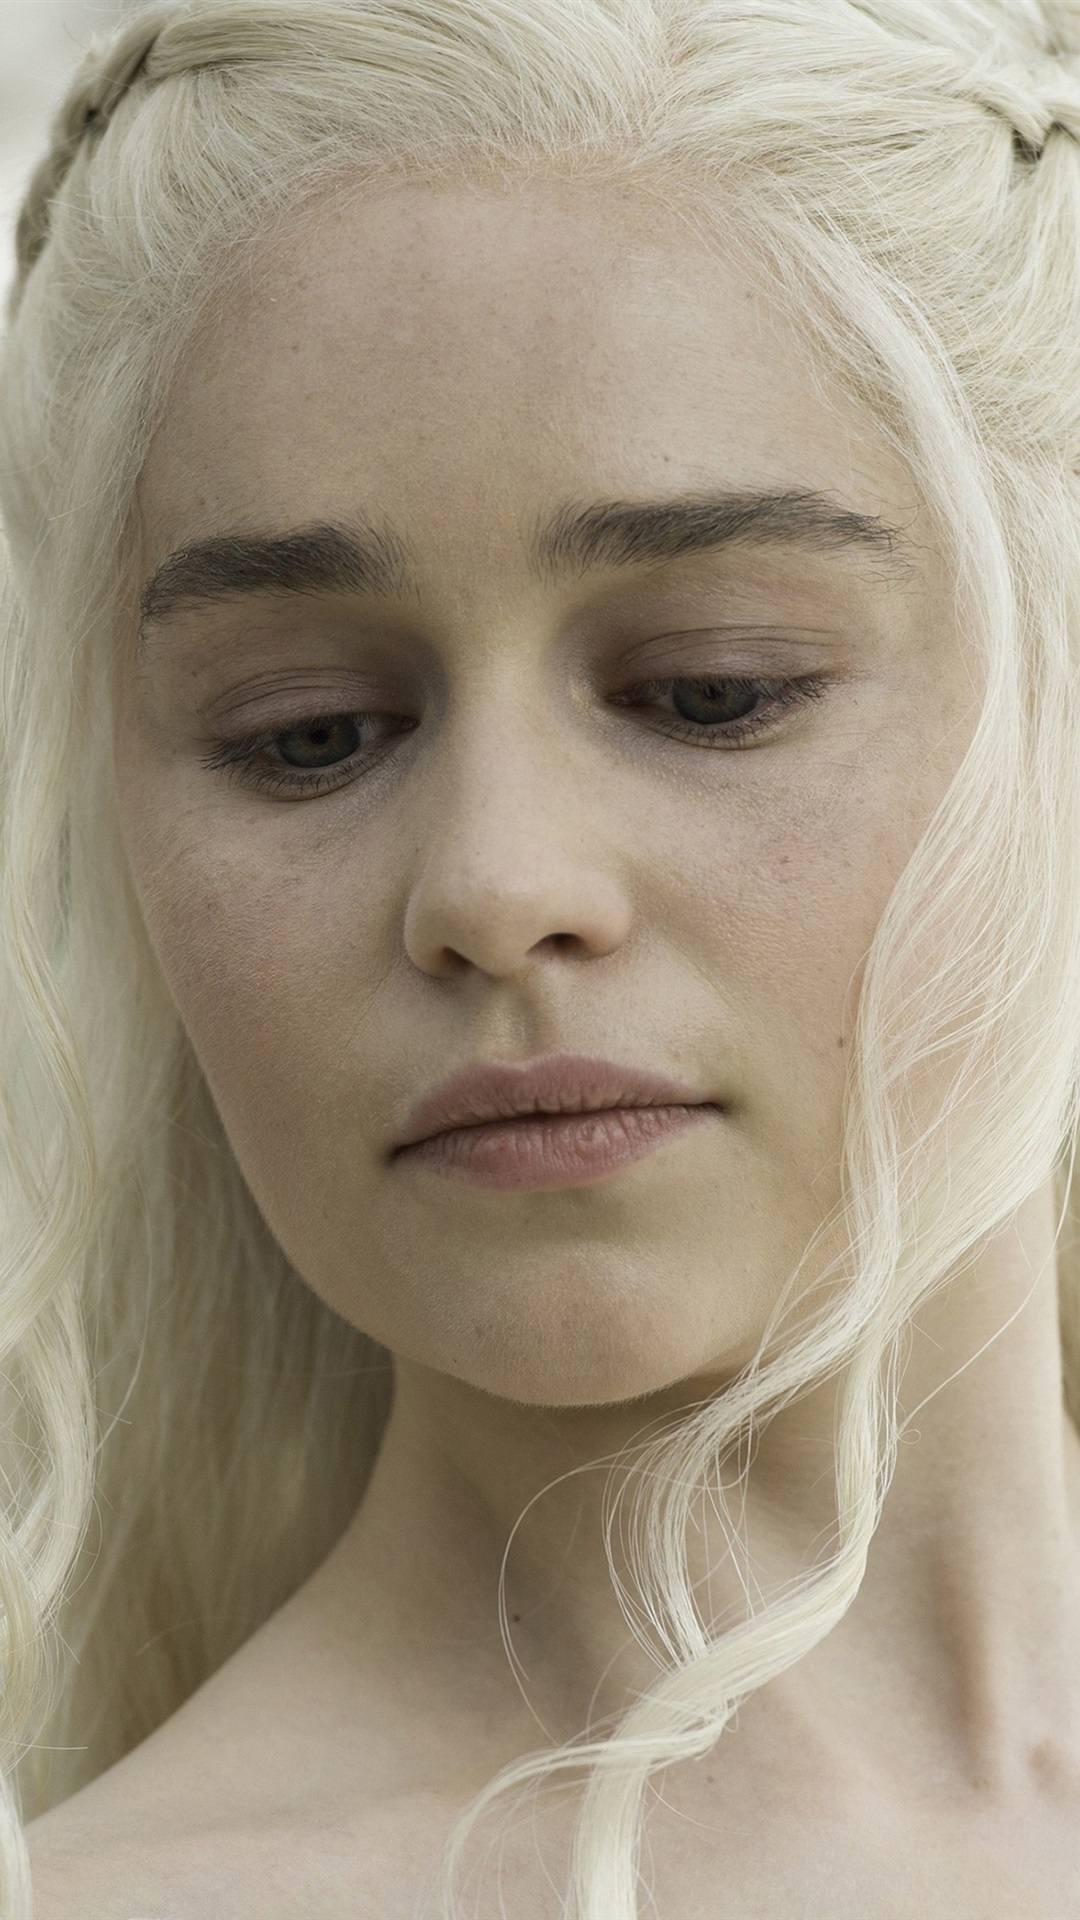 Game Of Thrones A Song Of Ice And Fire Daenerys Targaryen